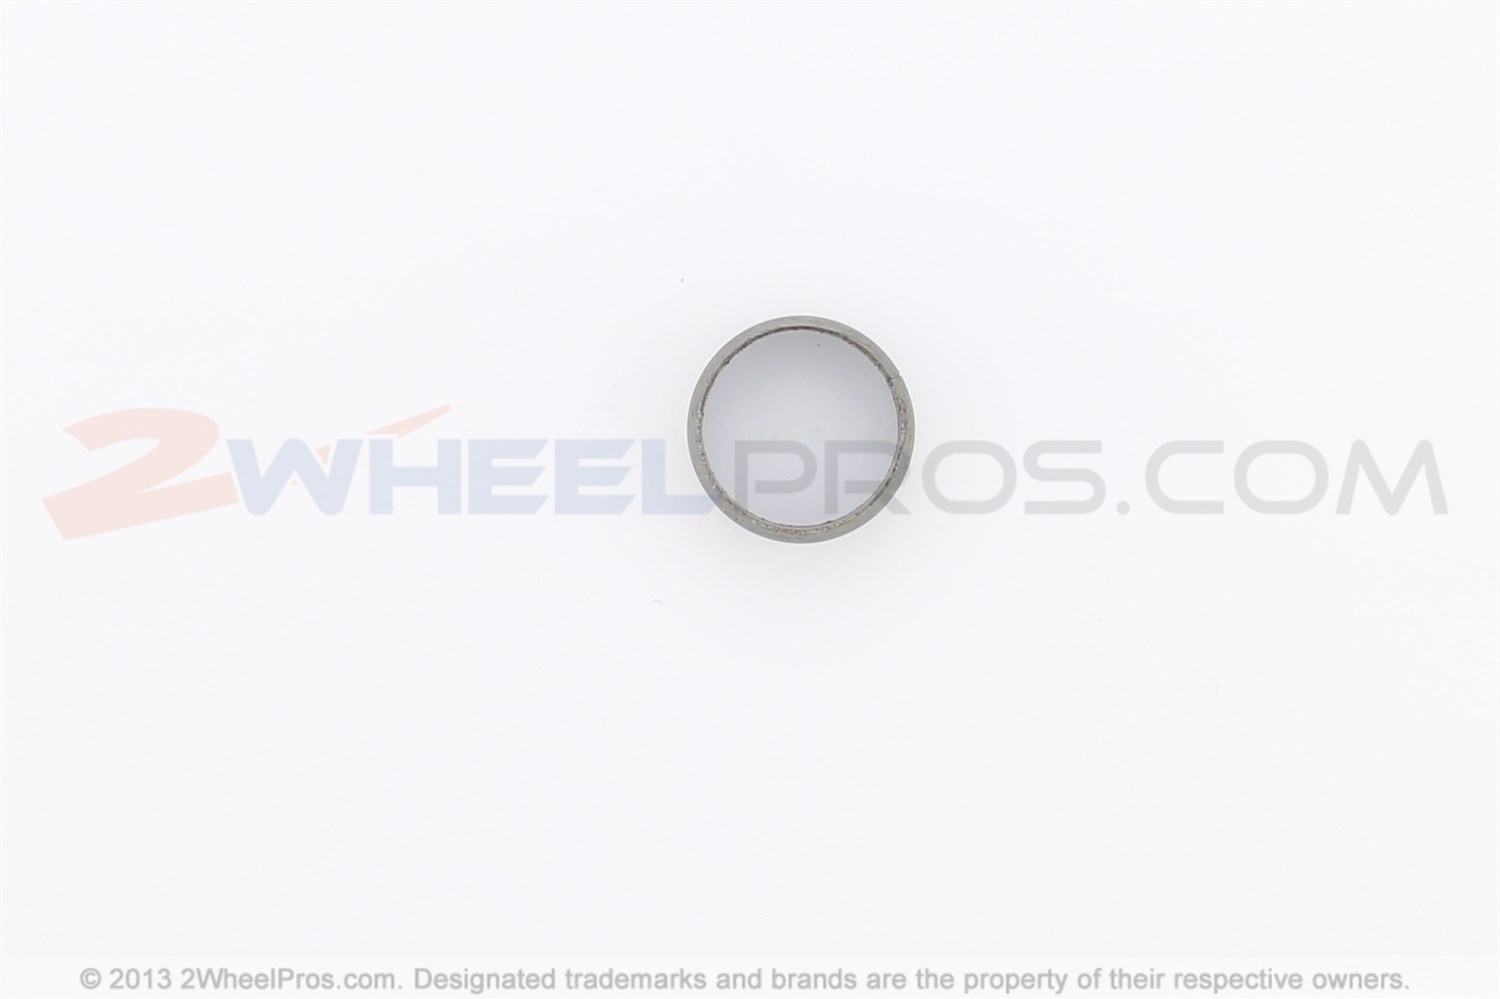 drive clutch a01aa32aa replacement parts for 2001 polaris  wiring diagram polaris trail boss 330